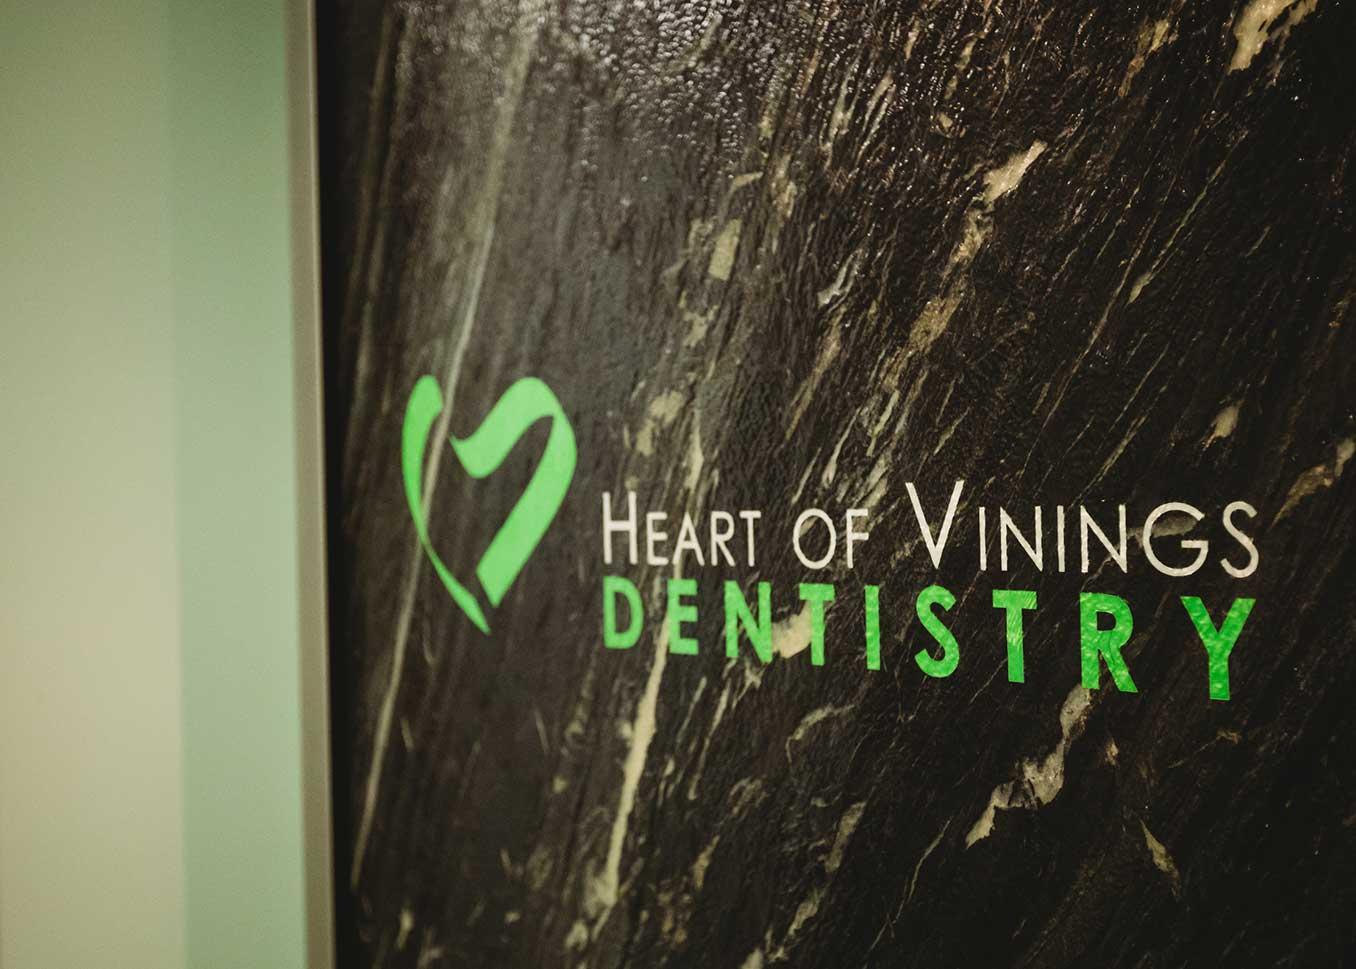 Photo of the Heart of Vinings Dentistry logo on a wall